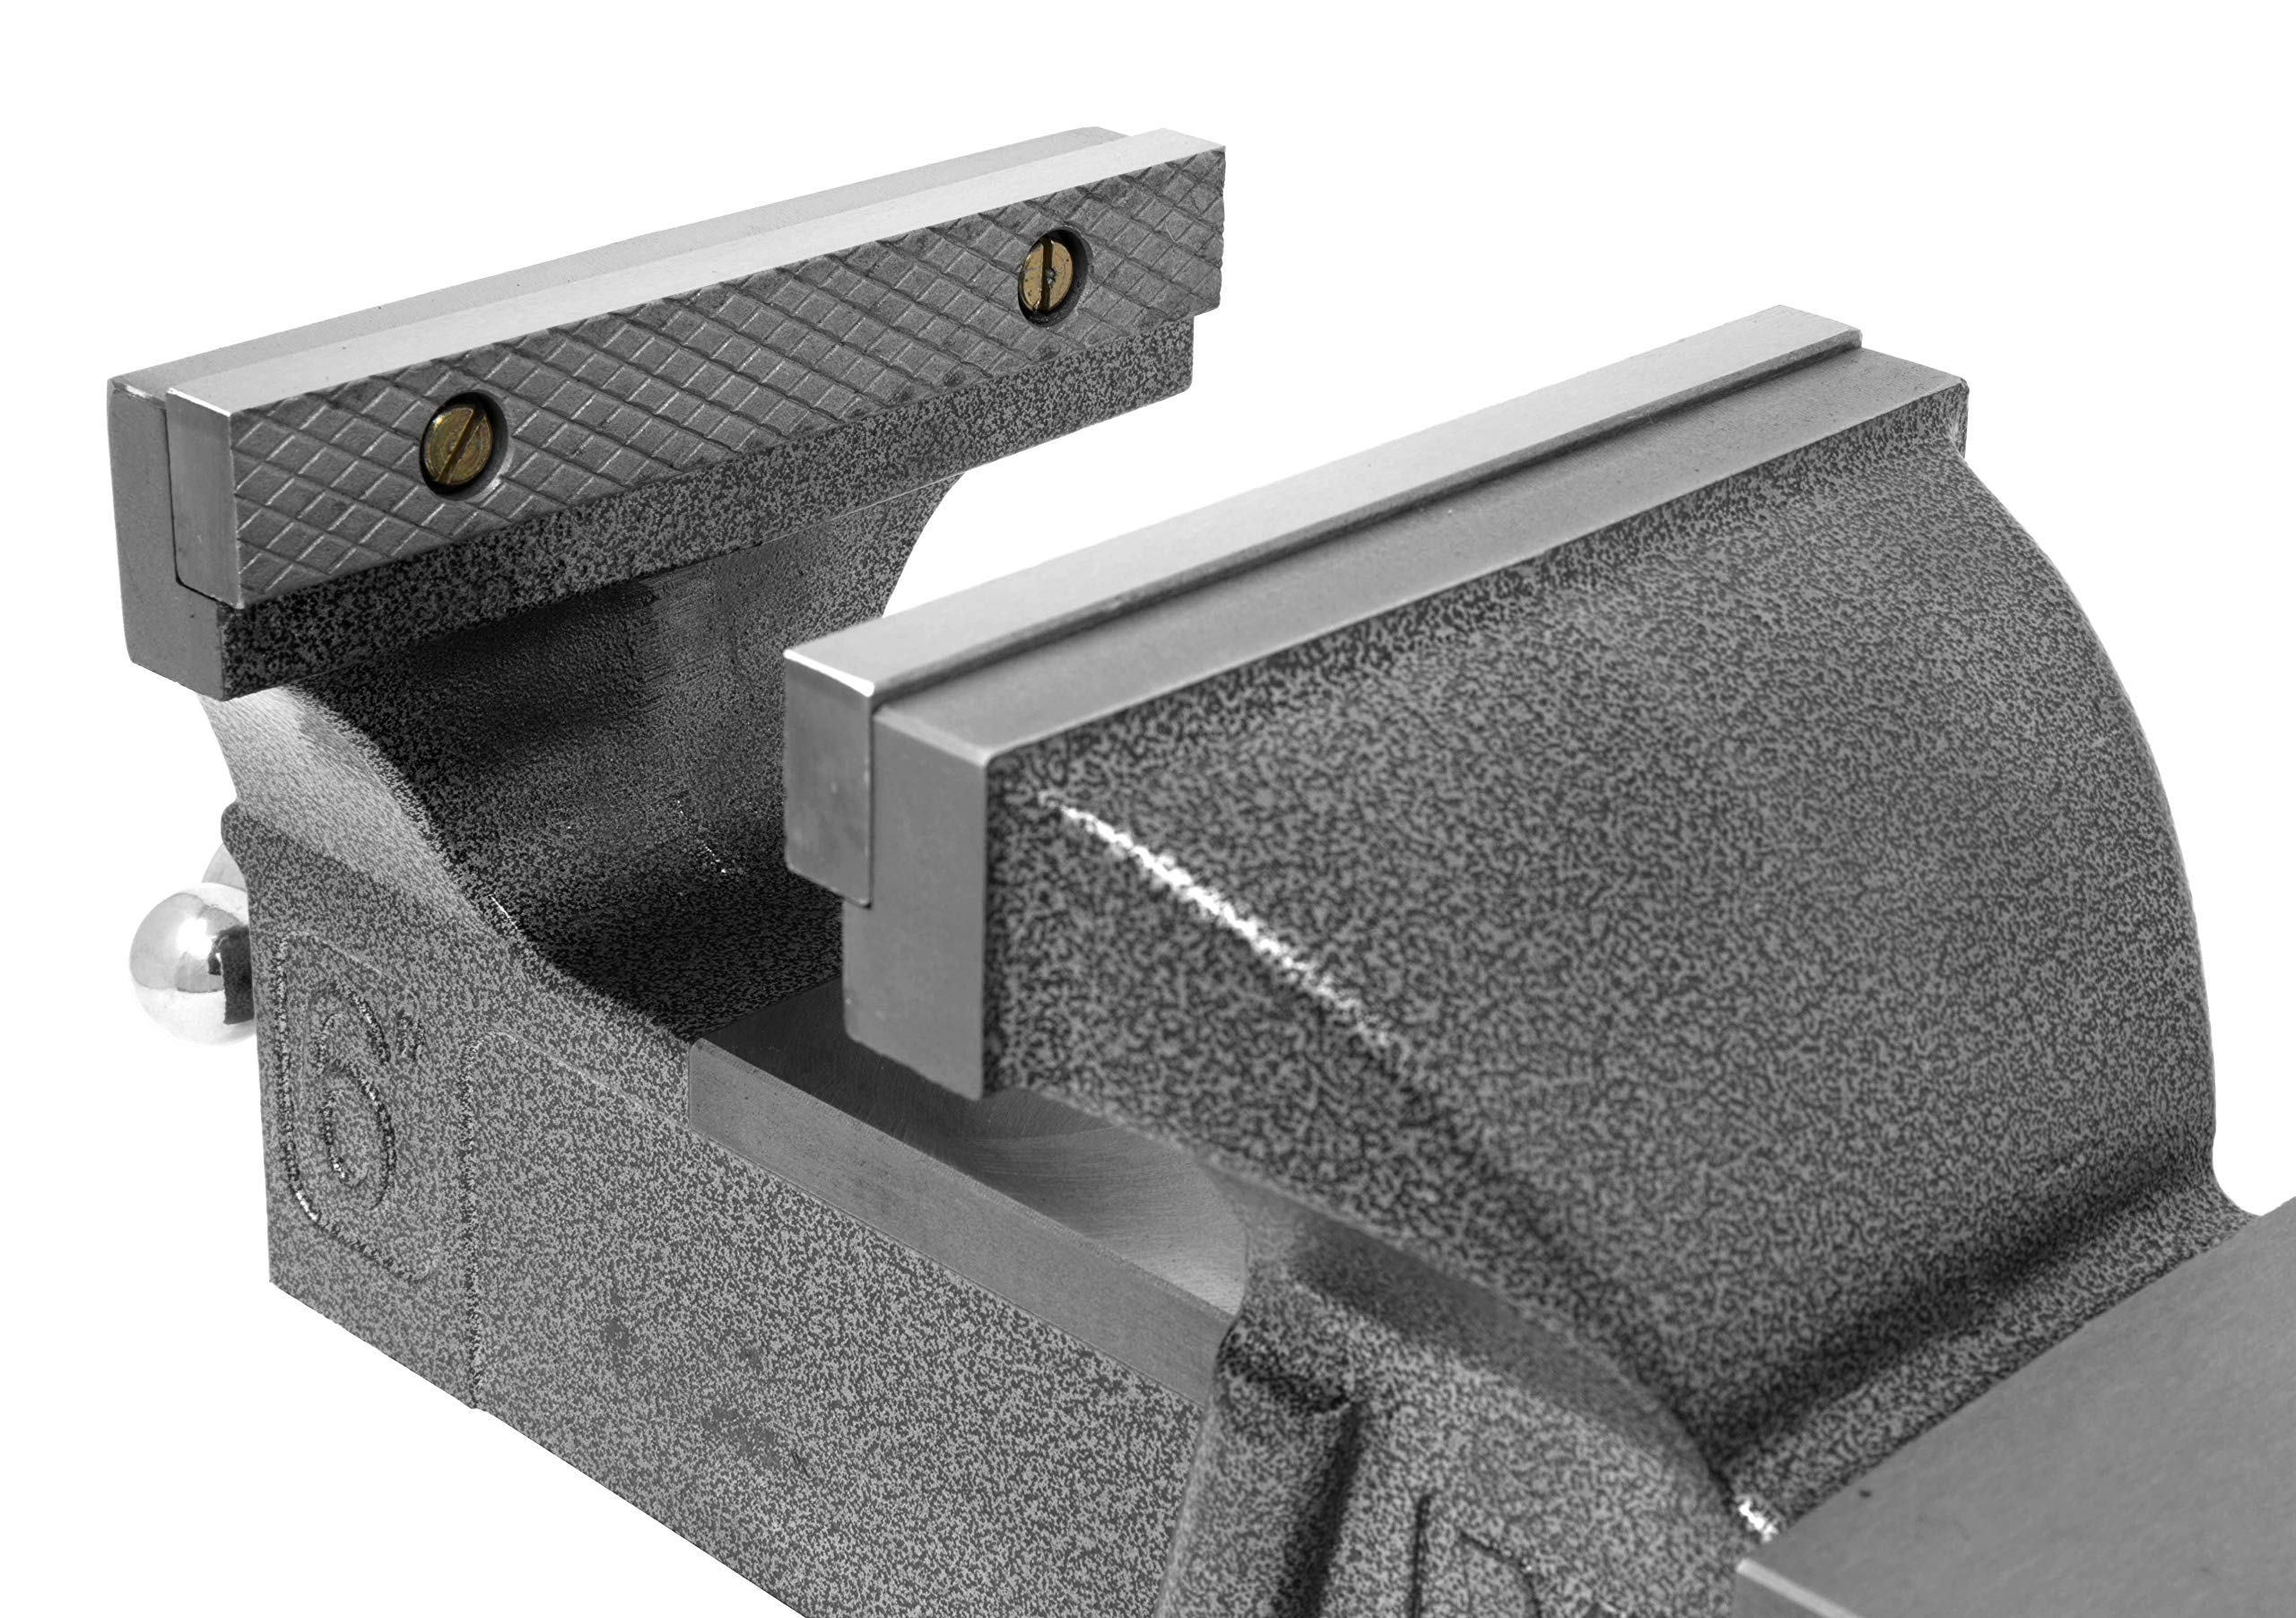 WEN 456BV 6-Inch Heavy Duty Cast Iron Bench Vise with Swivel Base (Renewed) by WEN (Image #4)